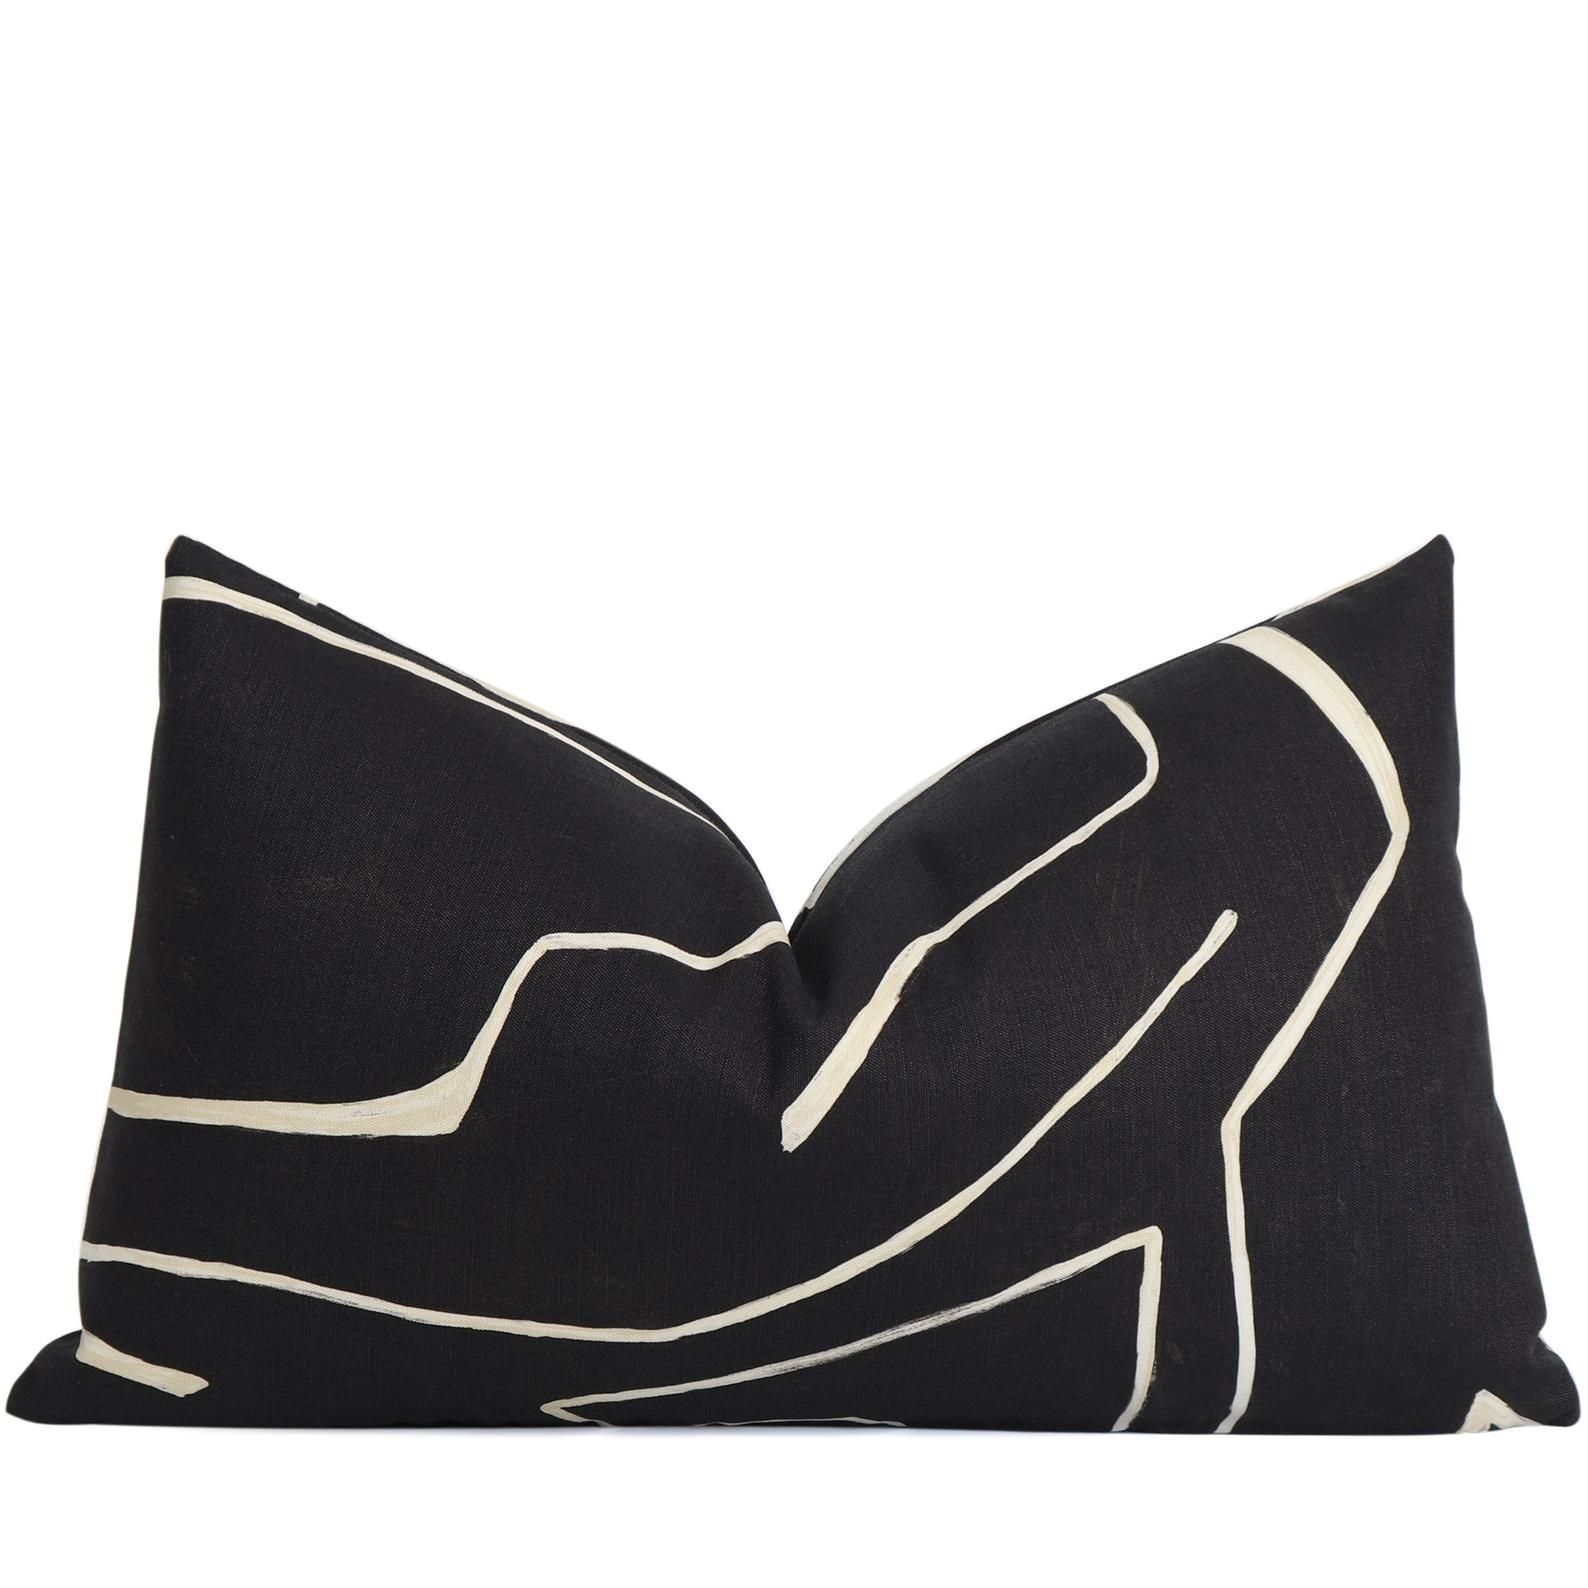 Black And Cream Kelly Wearstler Graffito Pillow Cover Ebony Etsy In 2020 Beige Pillow Covers Kelly Wearstler Pillow Covers